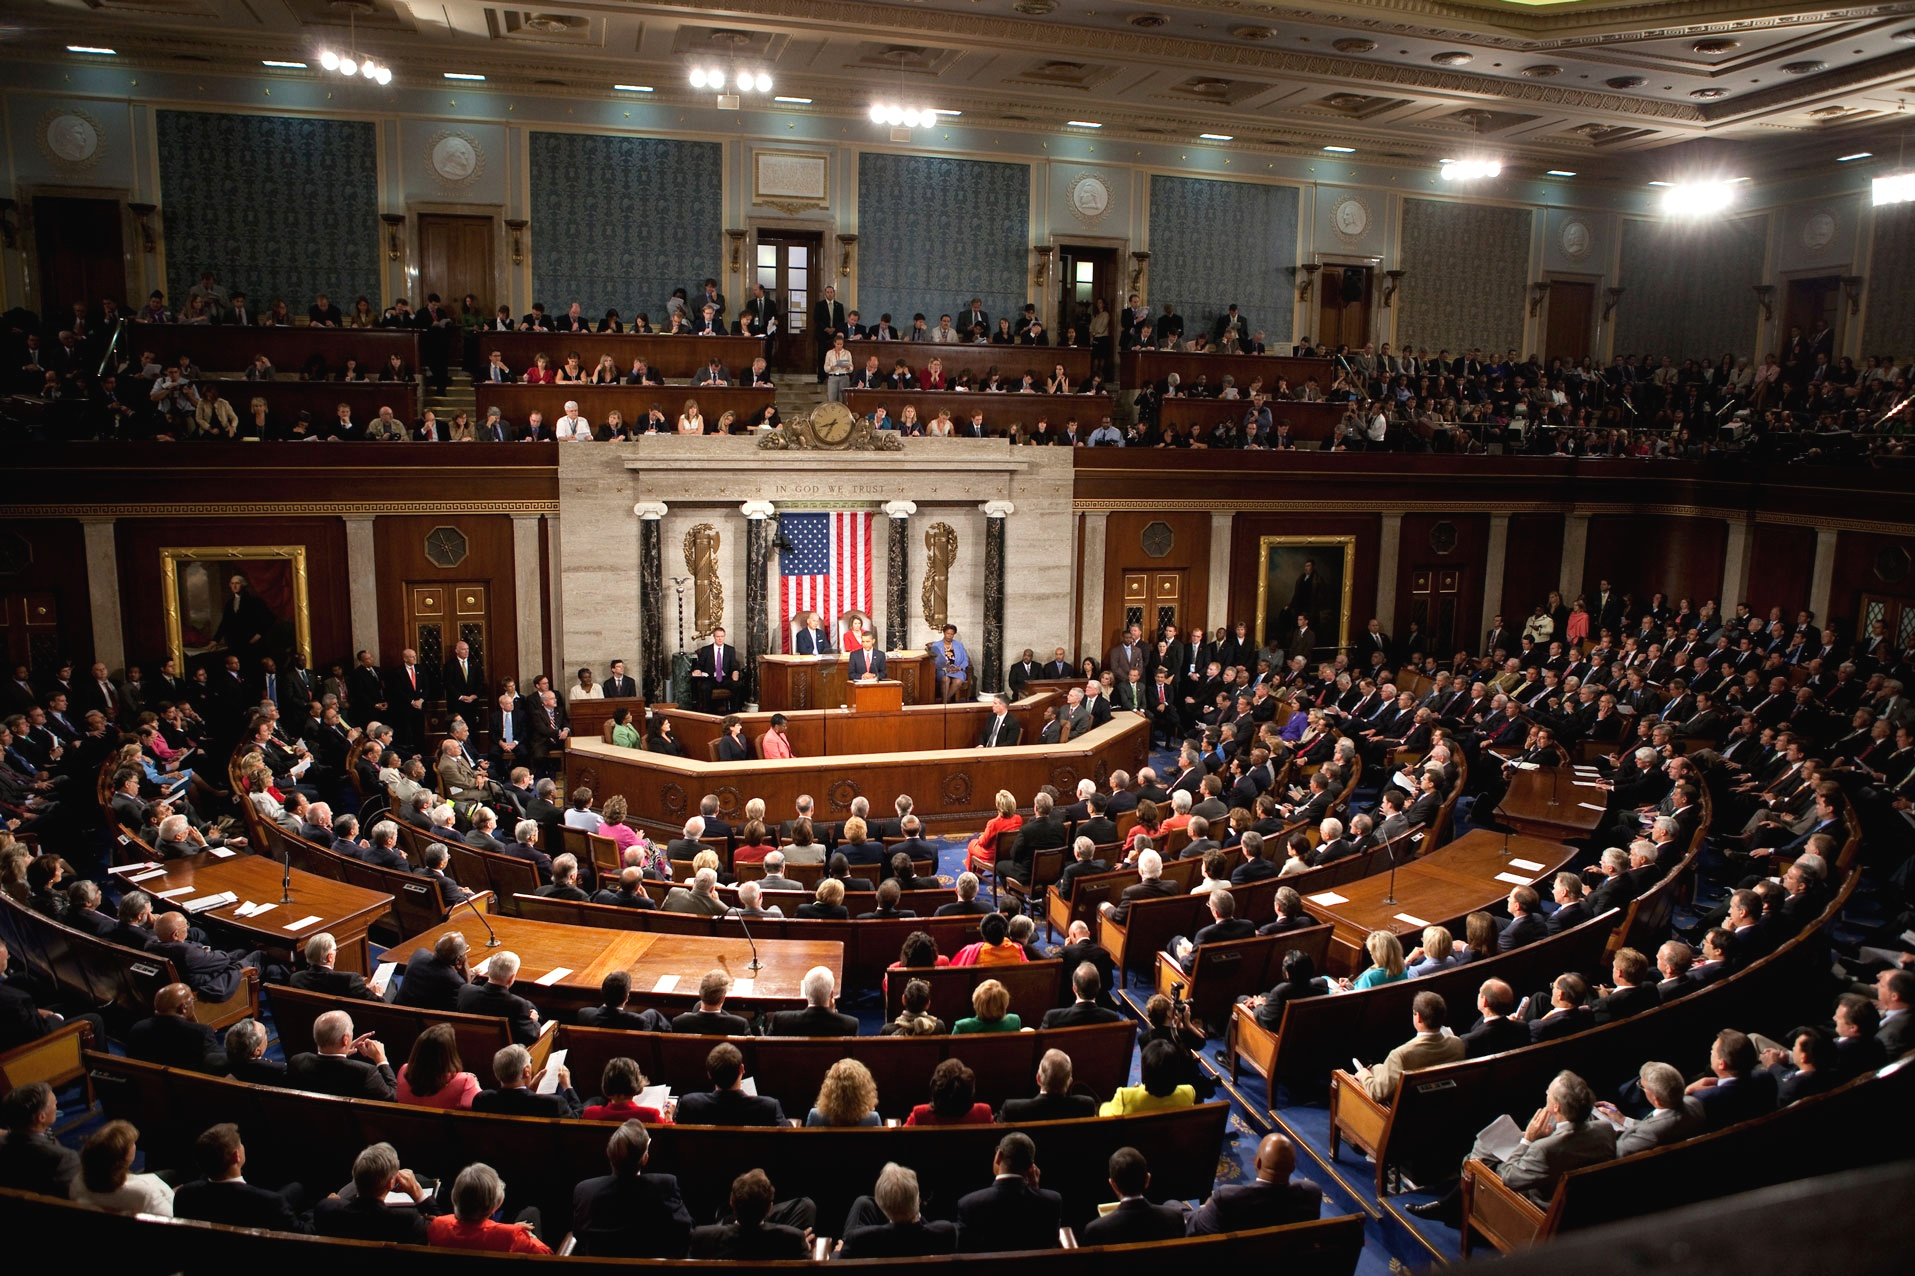 President Obama addressing a joint session of Congress in 2009 ( source )